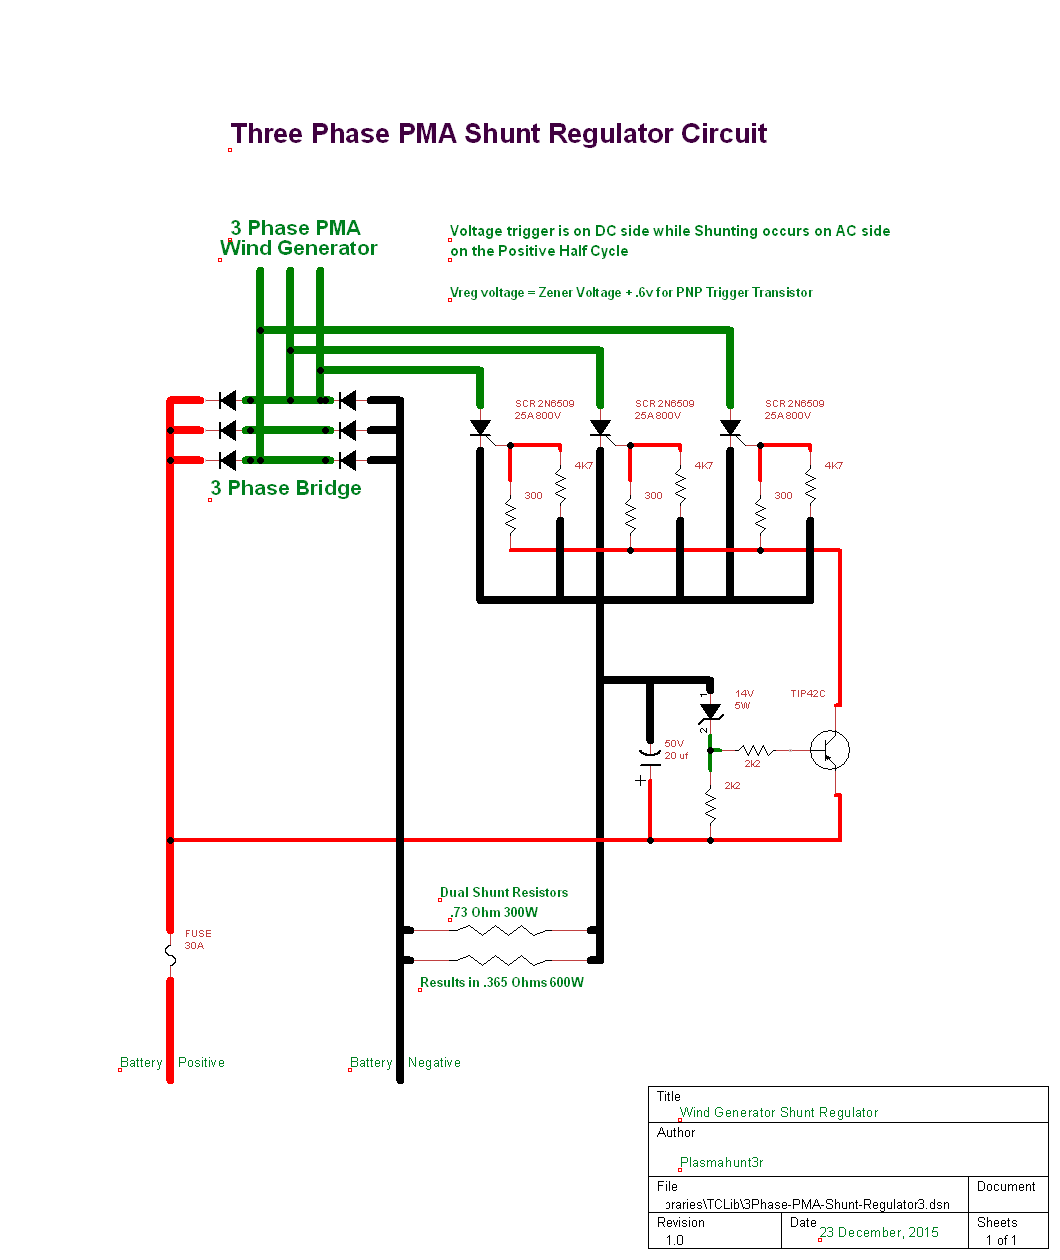 12v 3 Phase Wind Generator Wiring Diagram Library Regulator On Stator 3phase Pma Shunt Regulator3